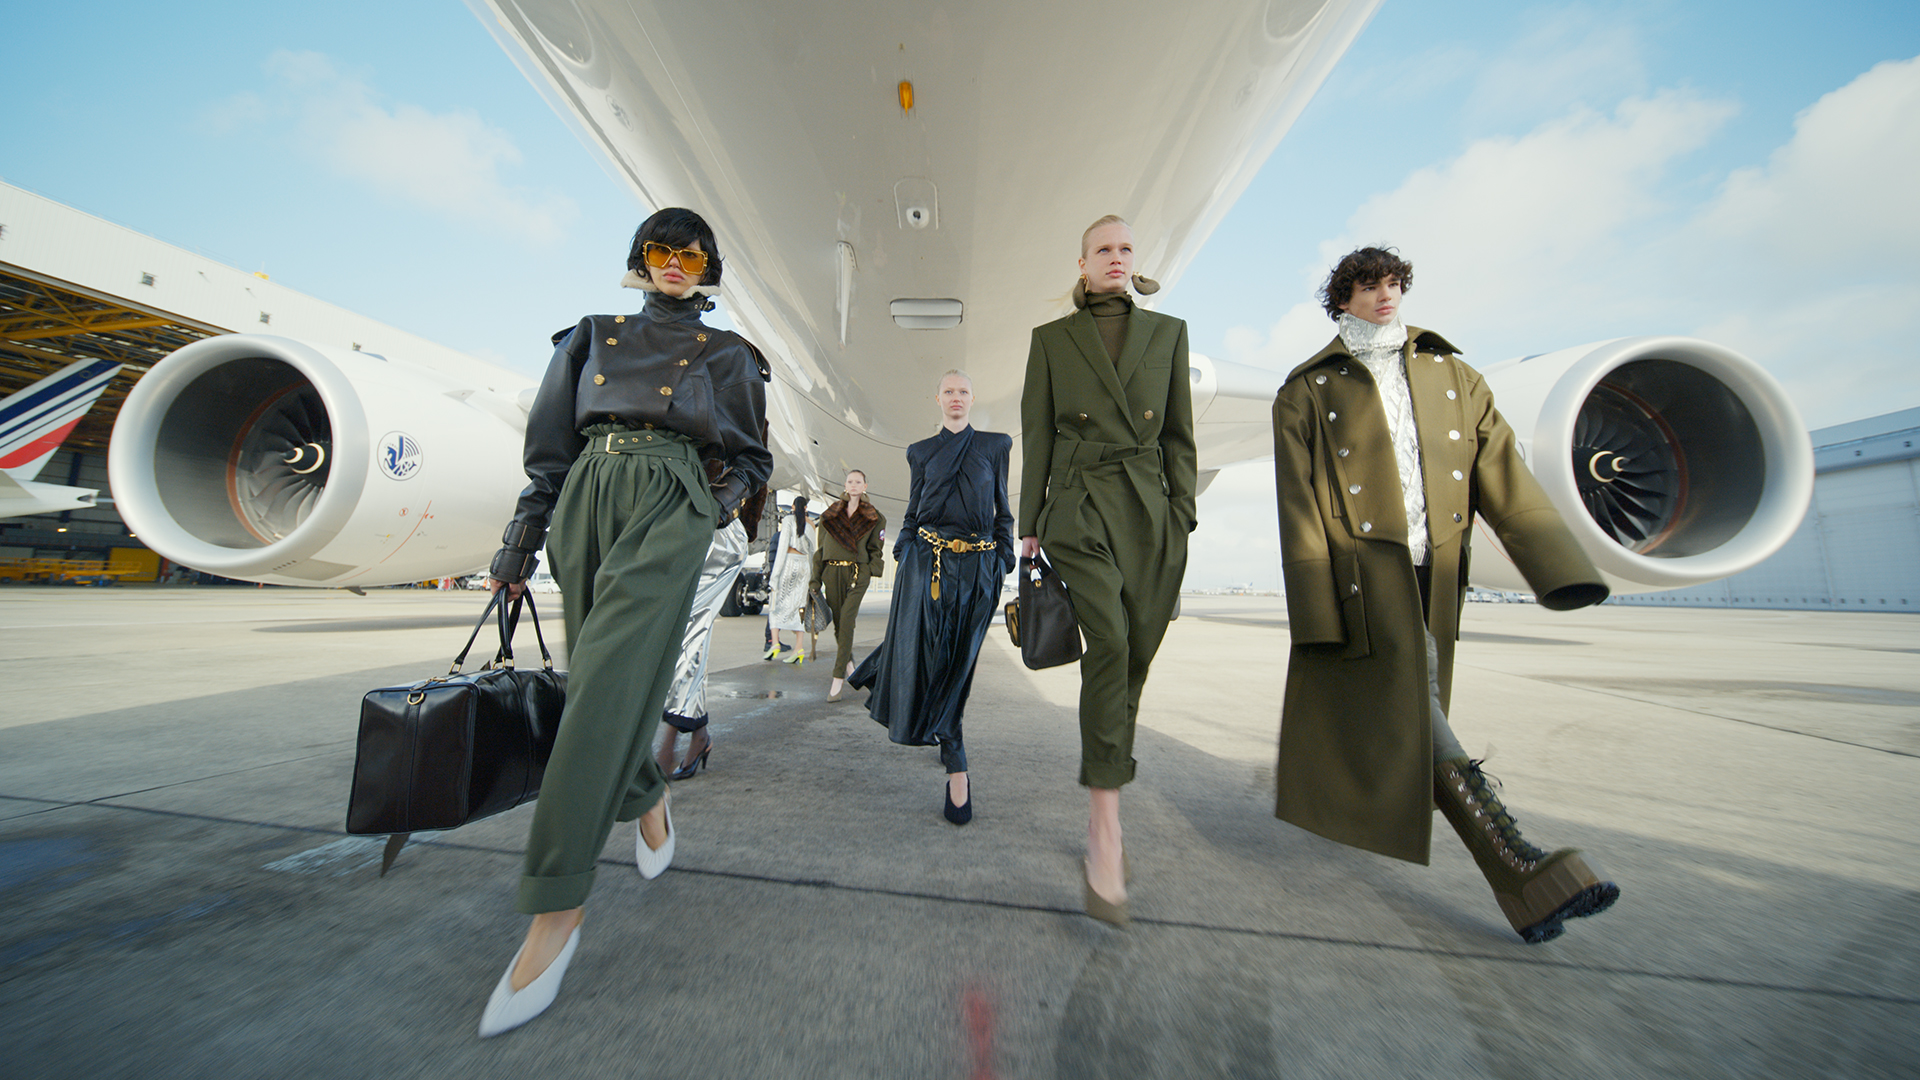 models walking from a plane